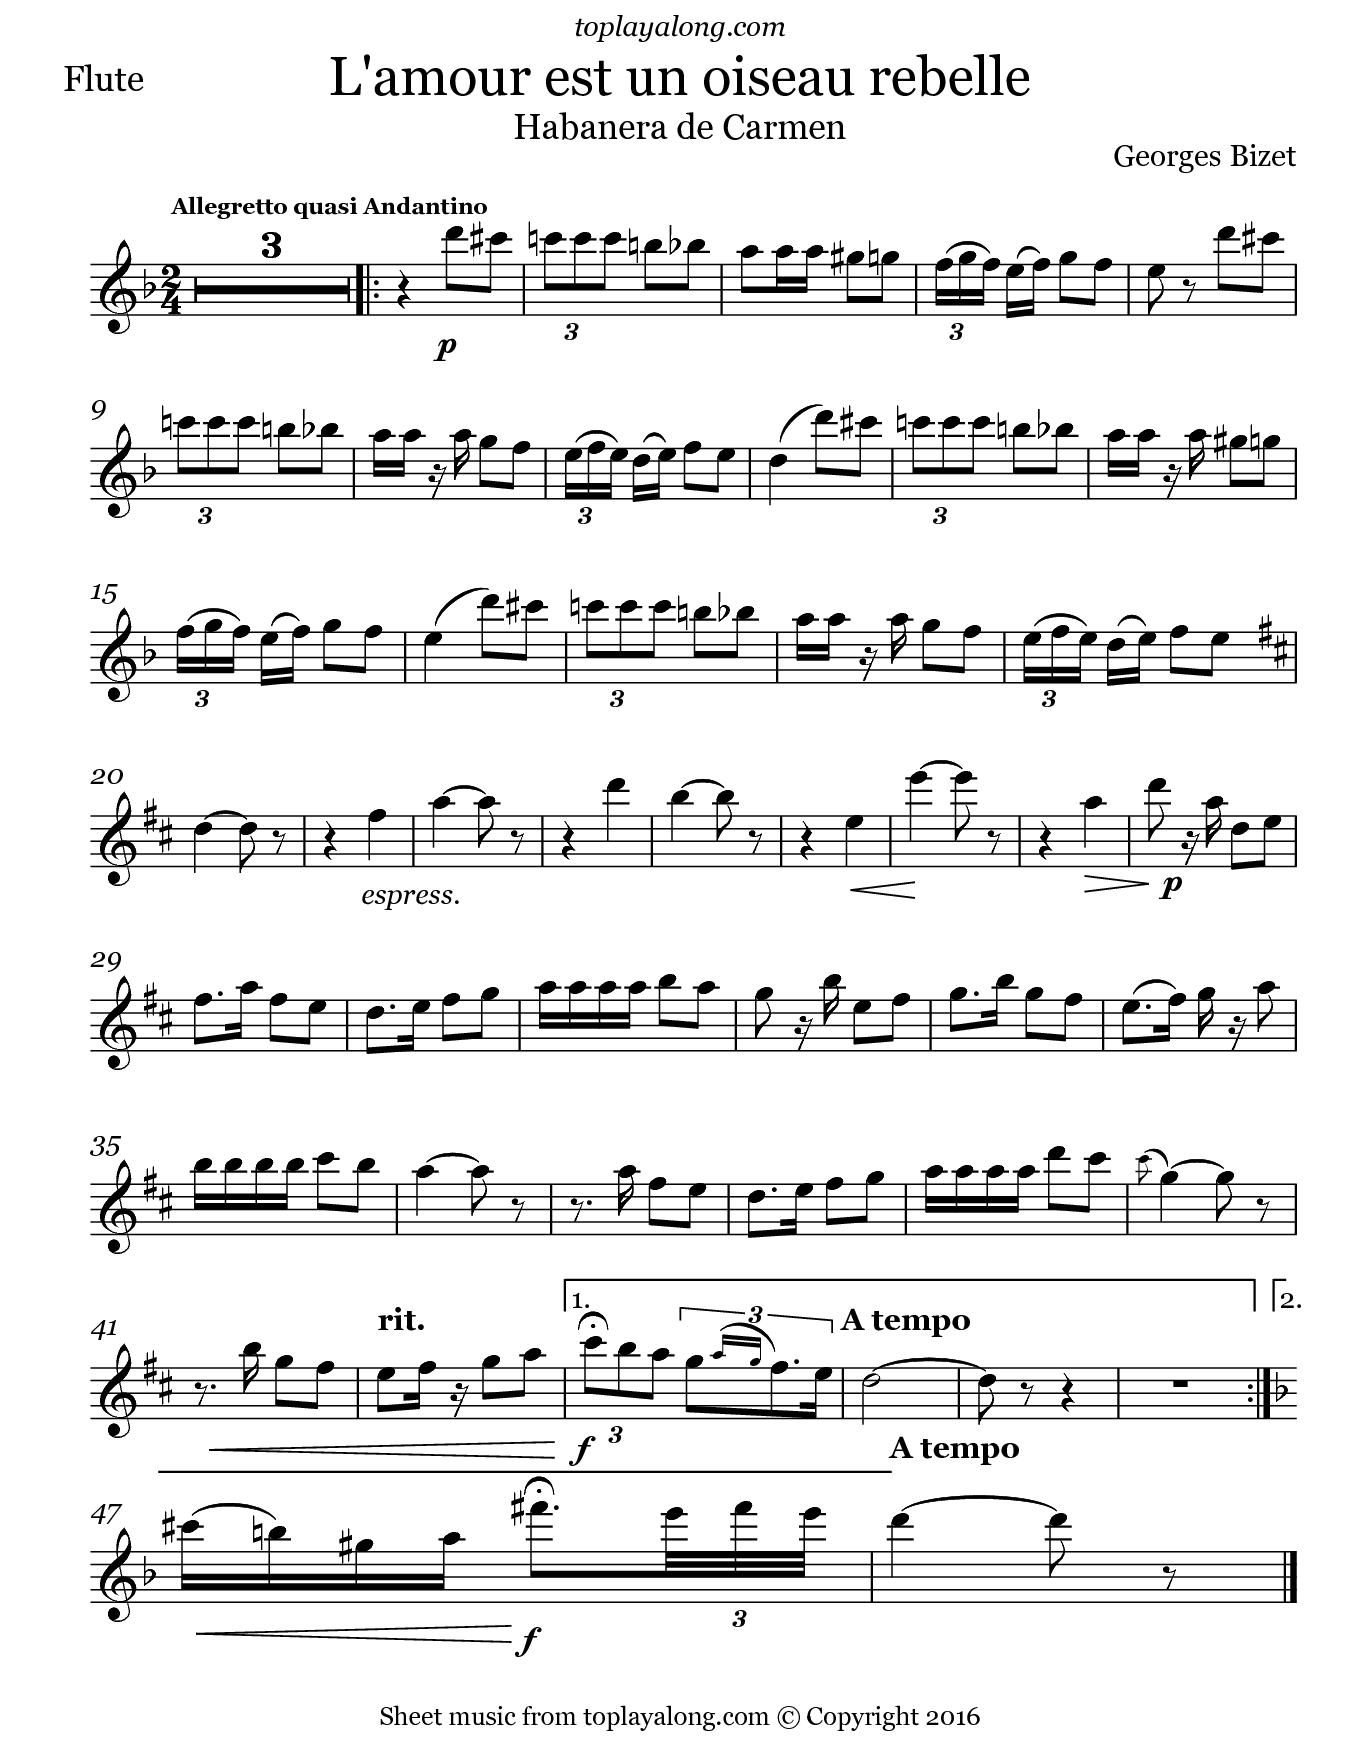 Habanera from Carmen by Bizet. Sheet music for Flute, page 1.